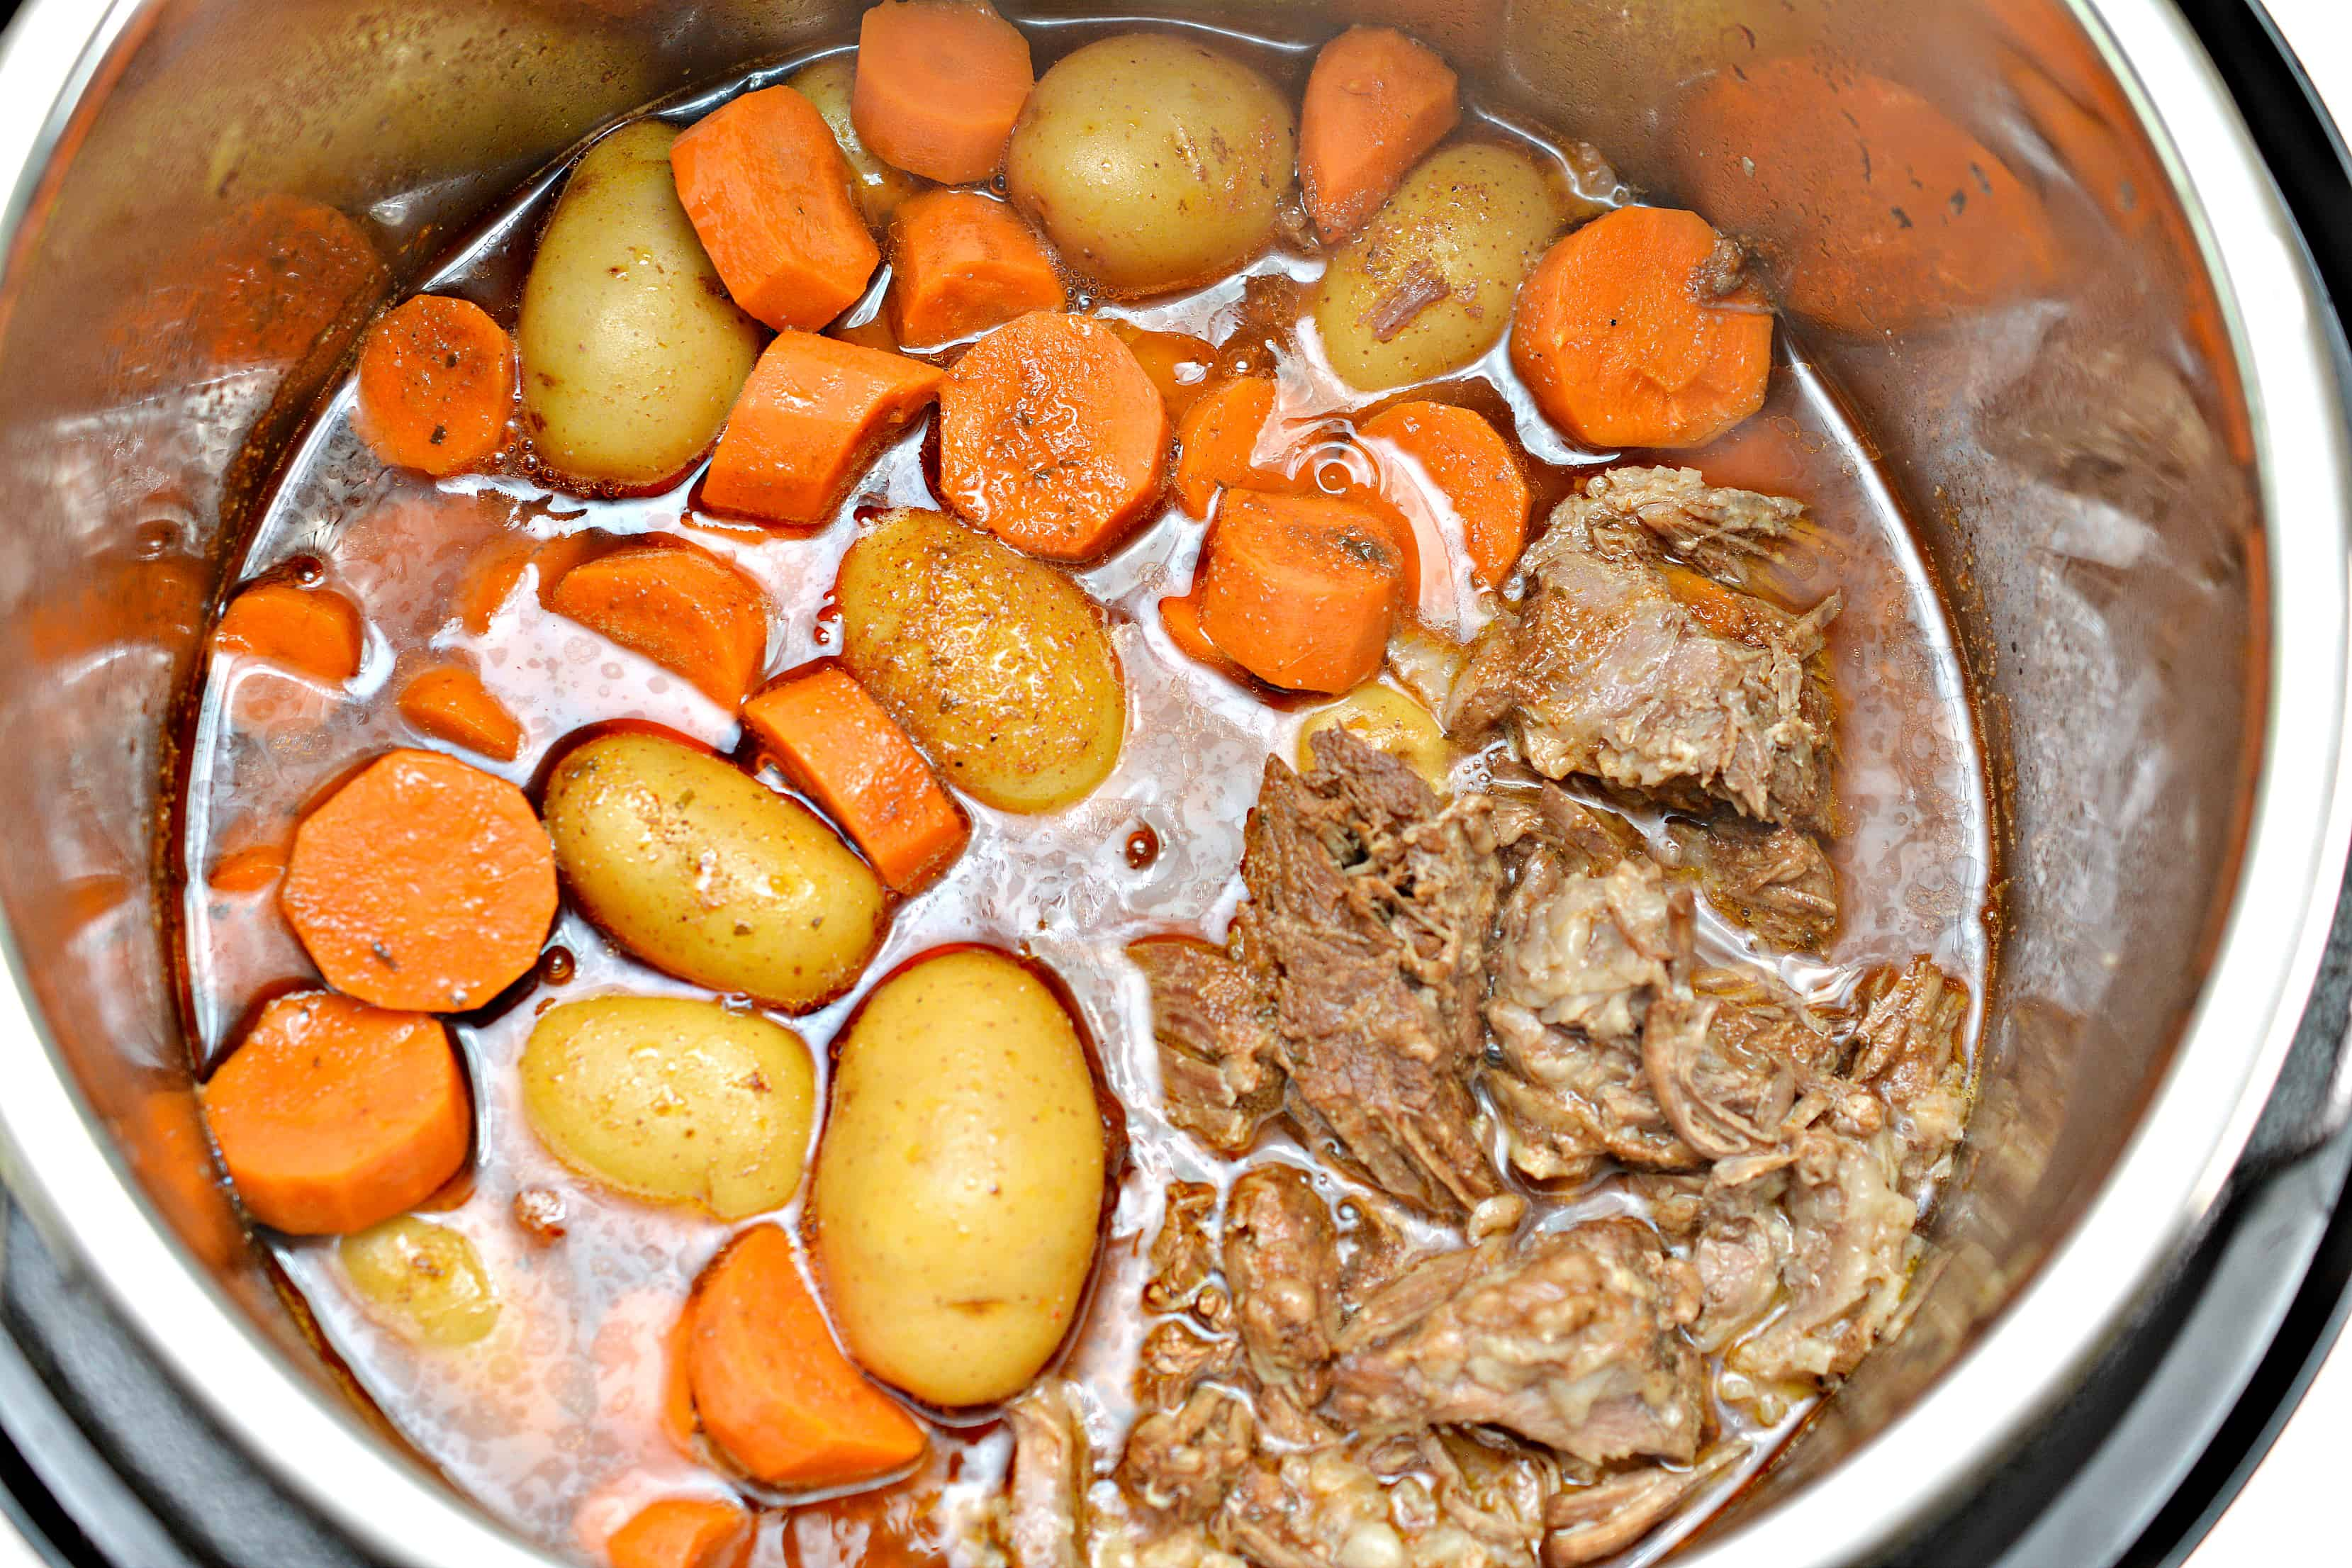 beef and potatoes with carrots in the pot